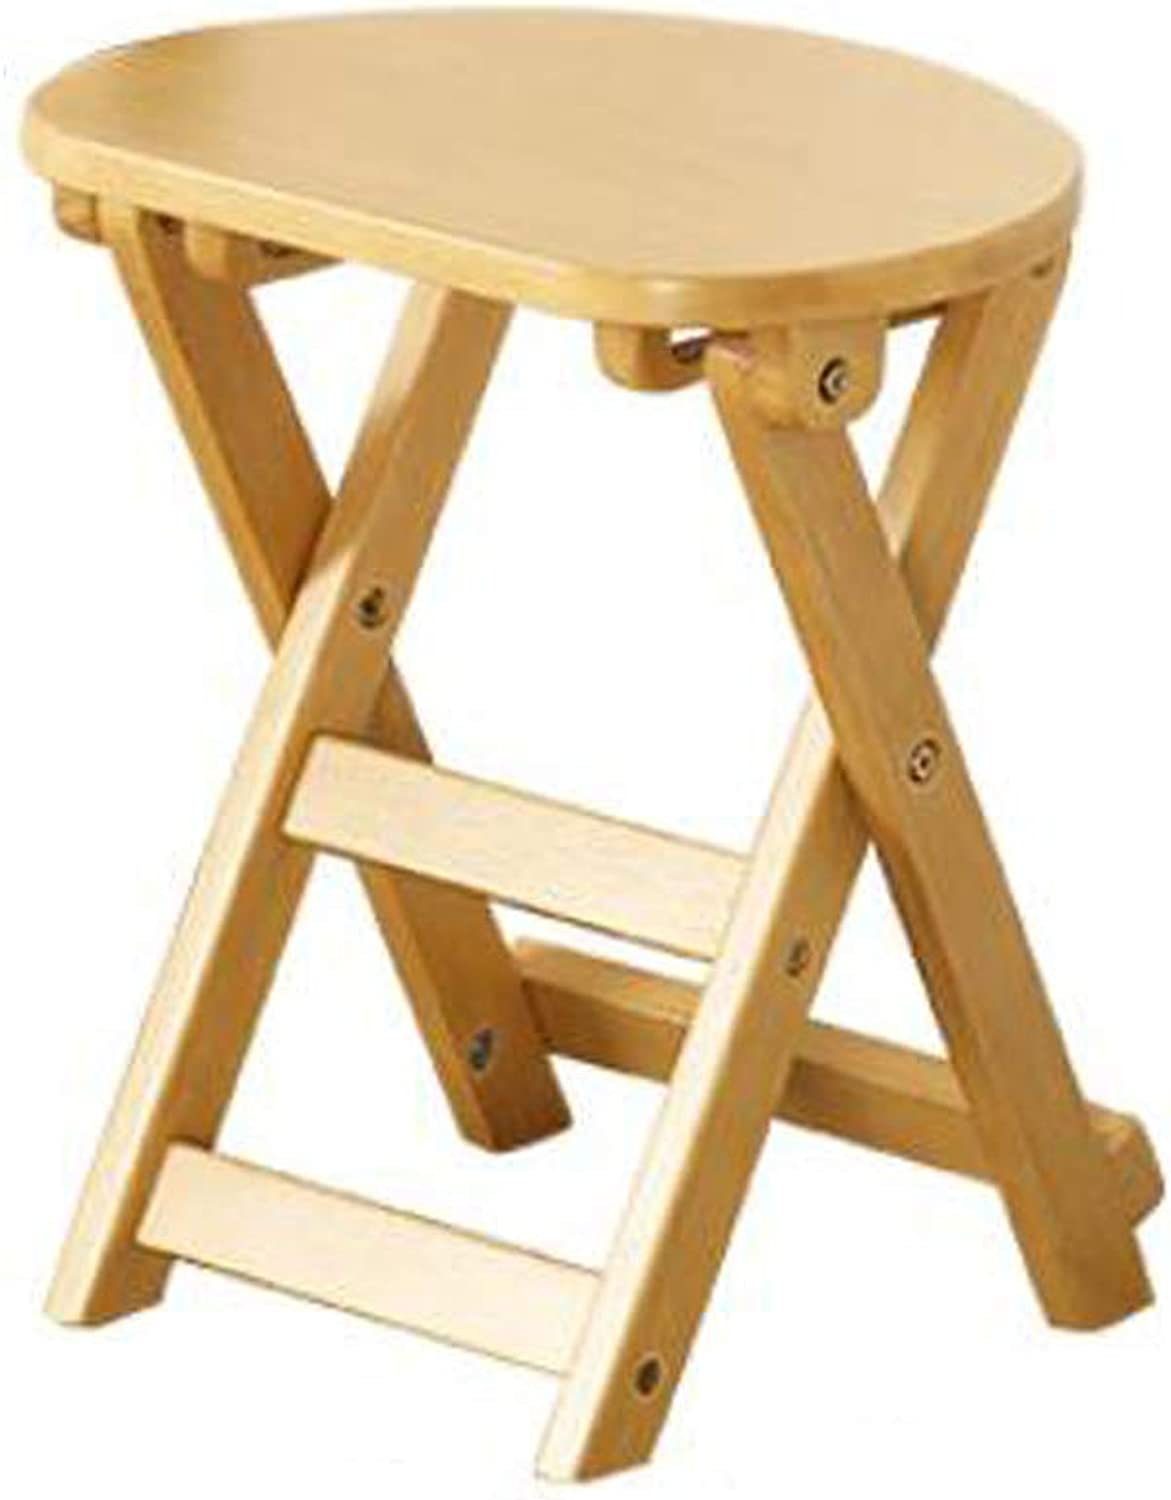 SYFO Household Solid Wood Stool, Simple Folding Stool, Fashion shoes Bench, Creative Folding Stool Stool (color   Yellow)